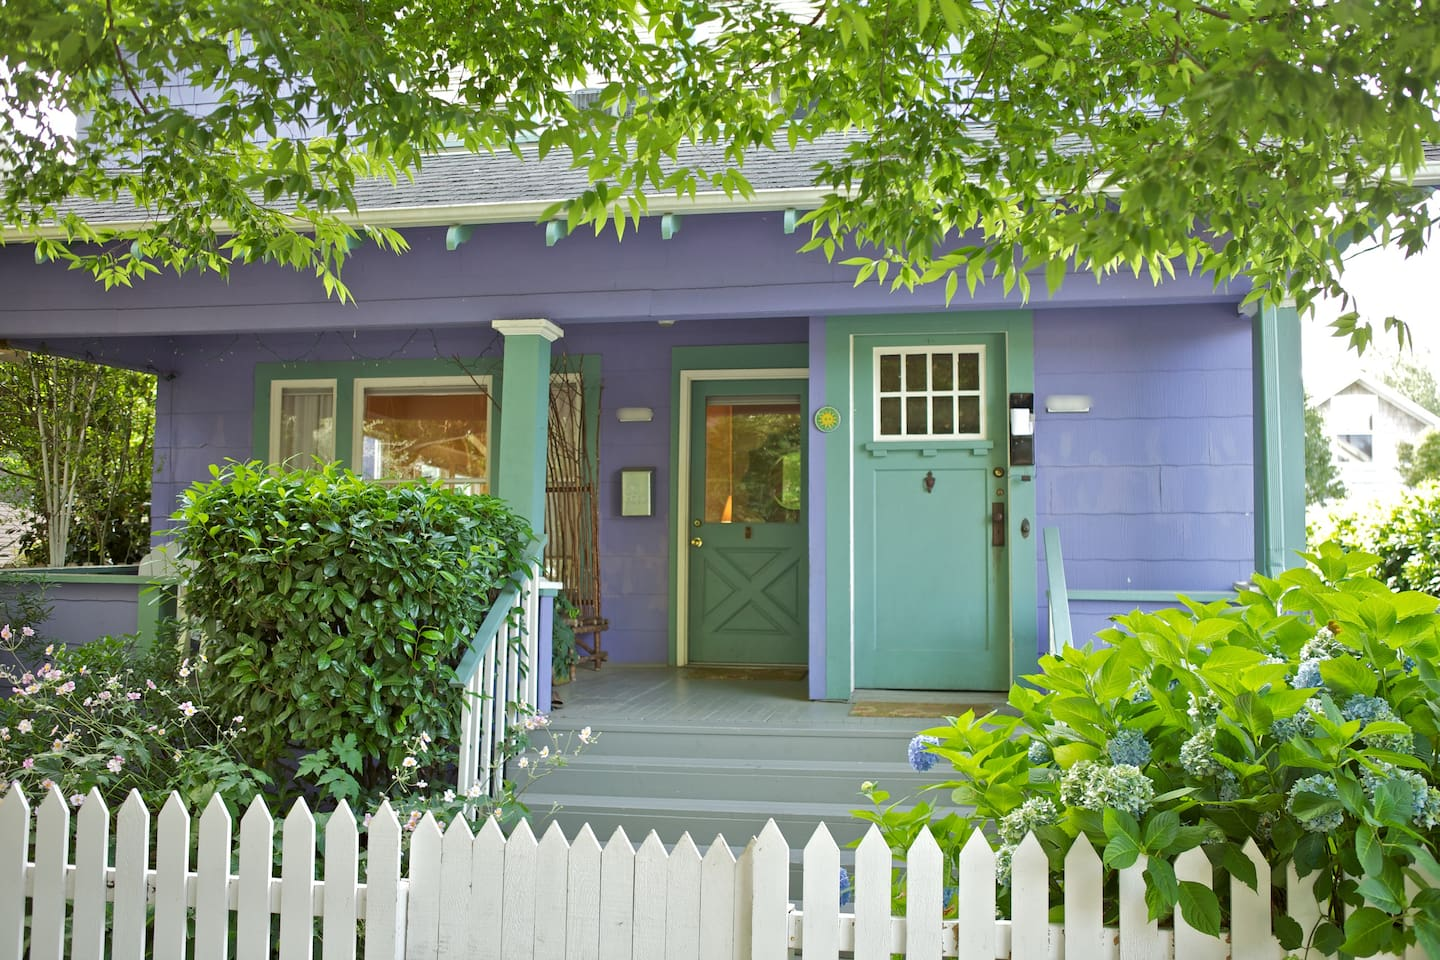 Cutest house on the block, as long as you like periwinkle